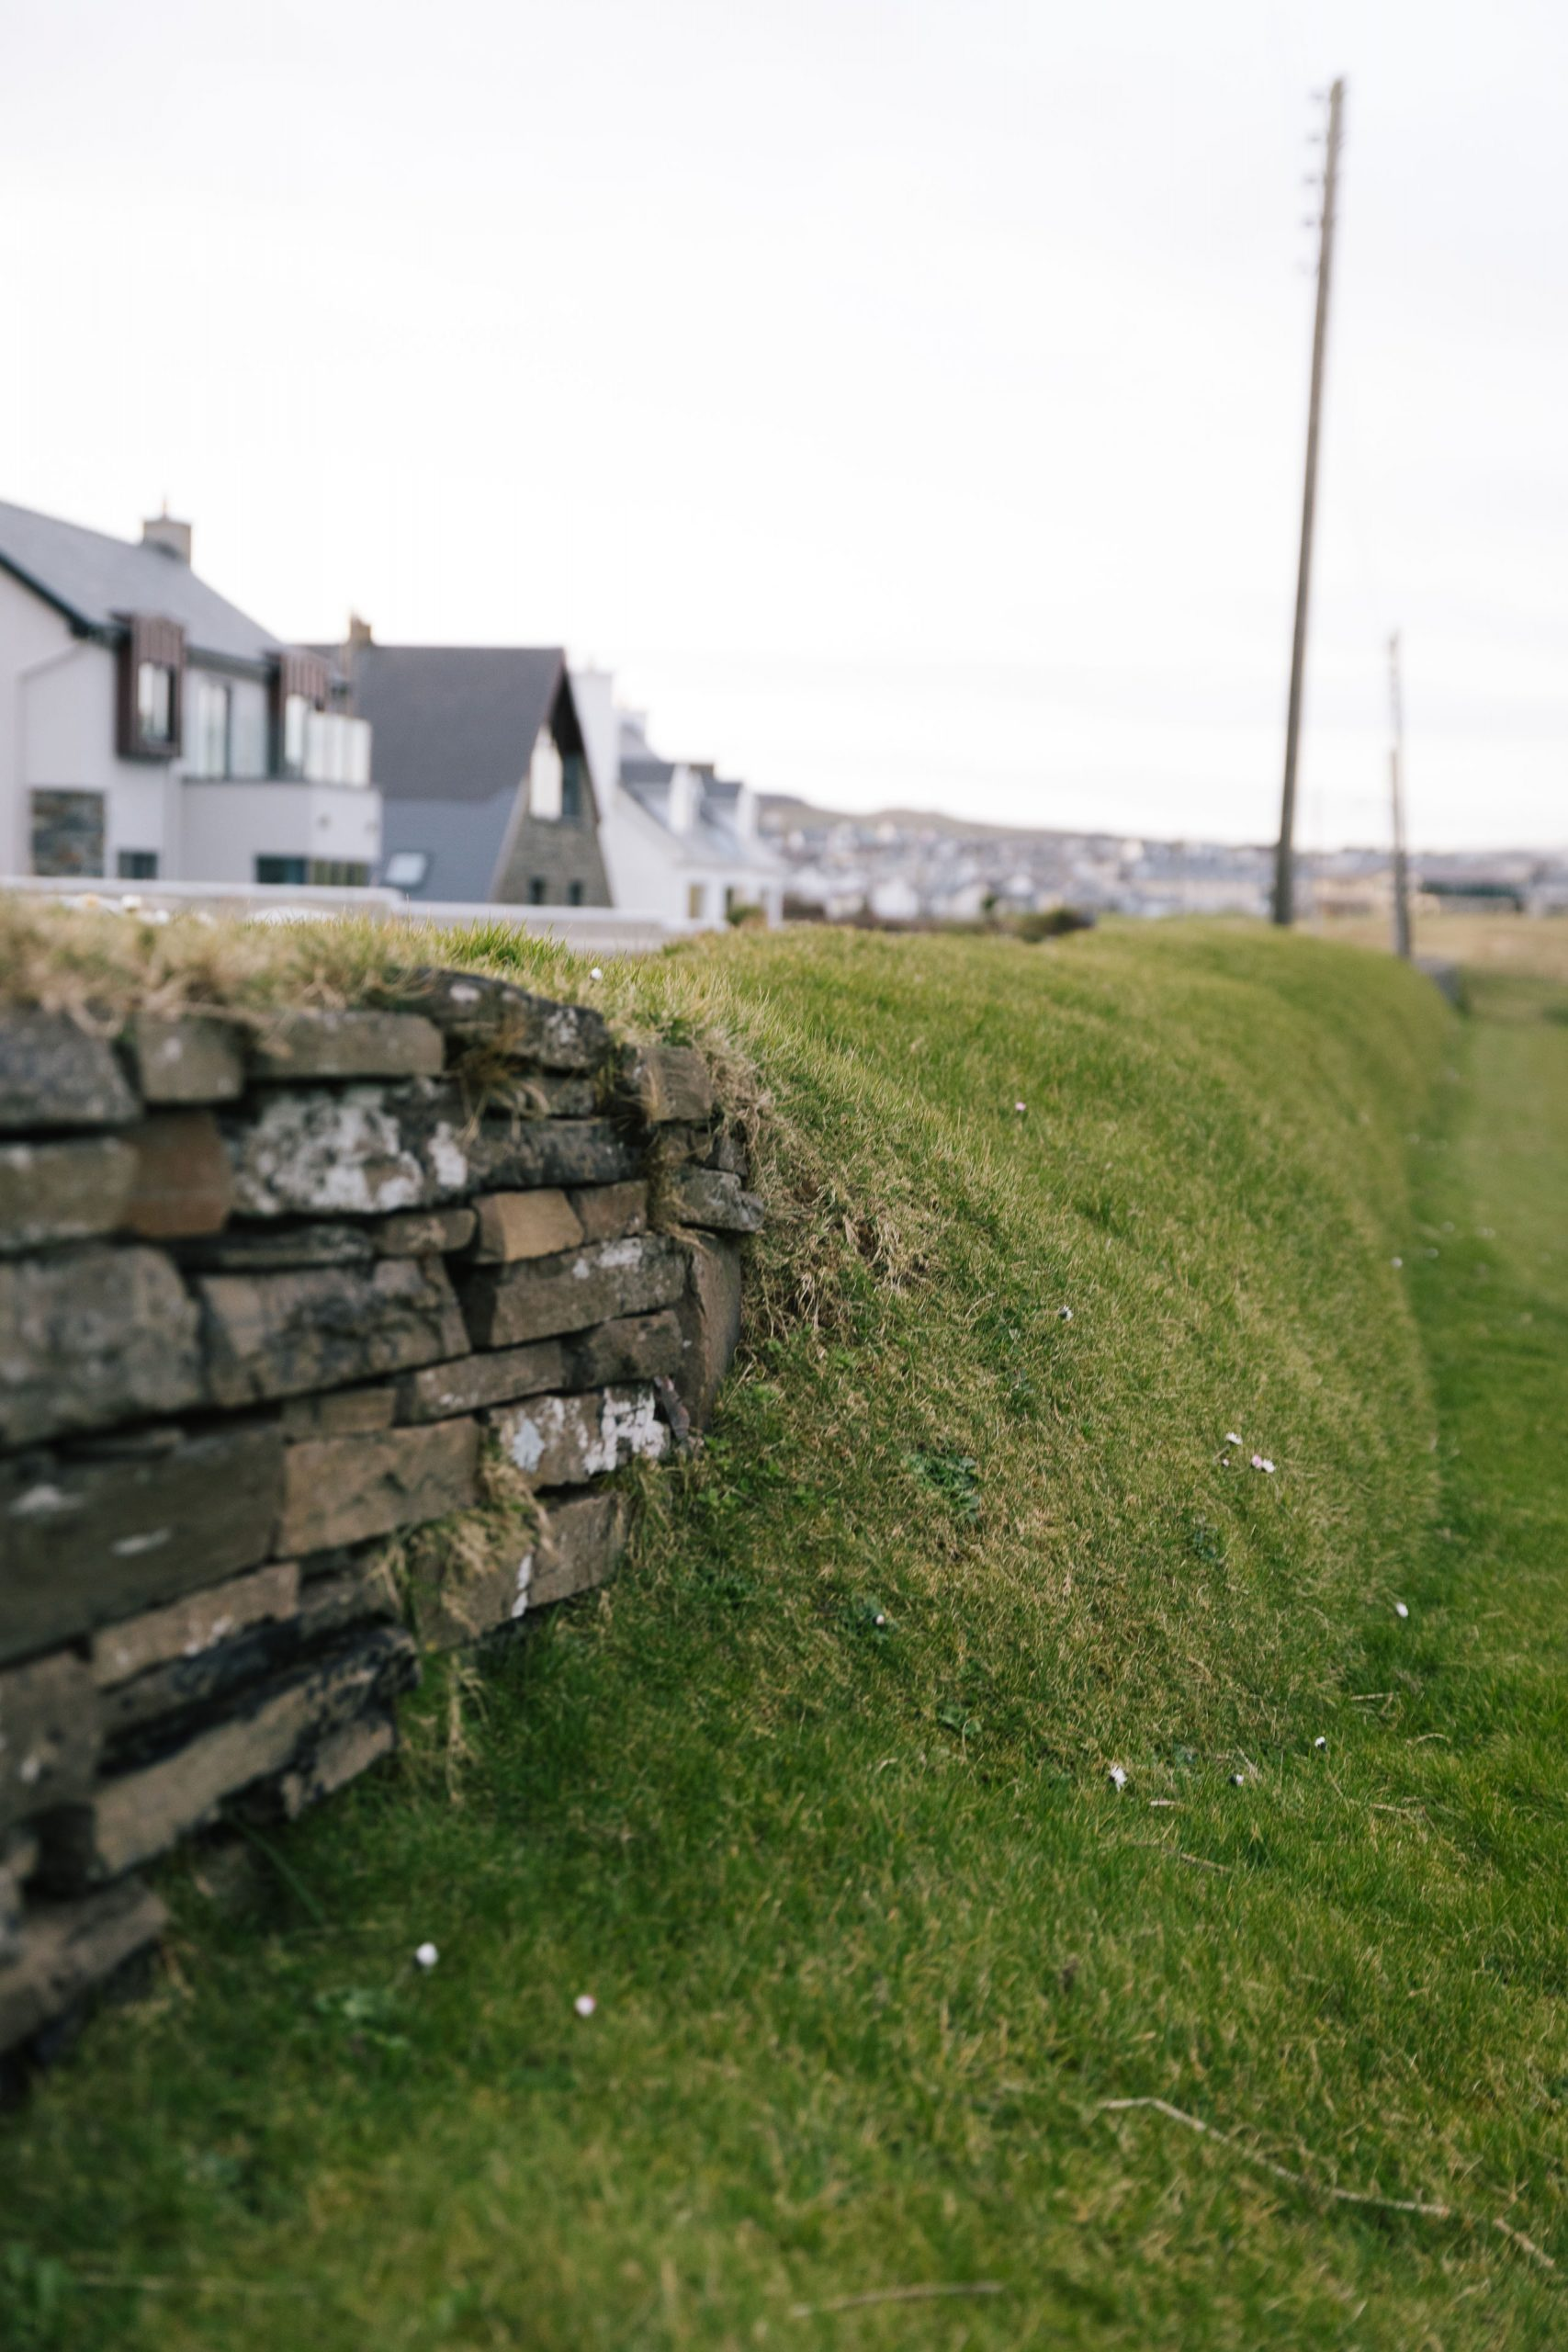 Picture of an old stone wall. Photo by Tom Shaw.